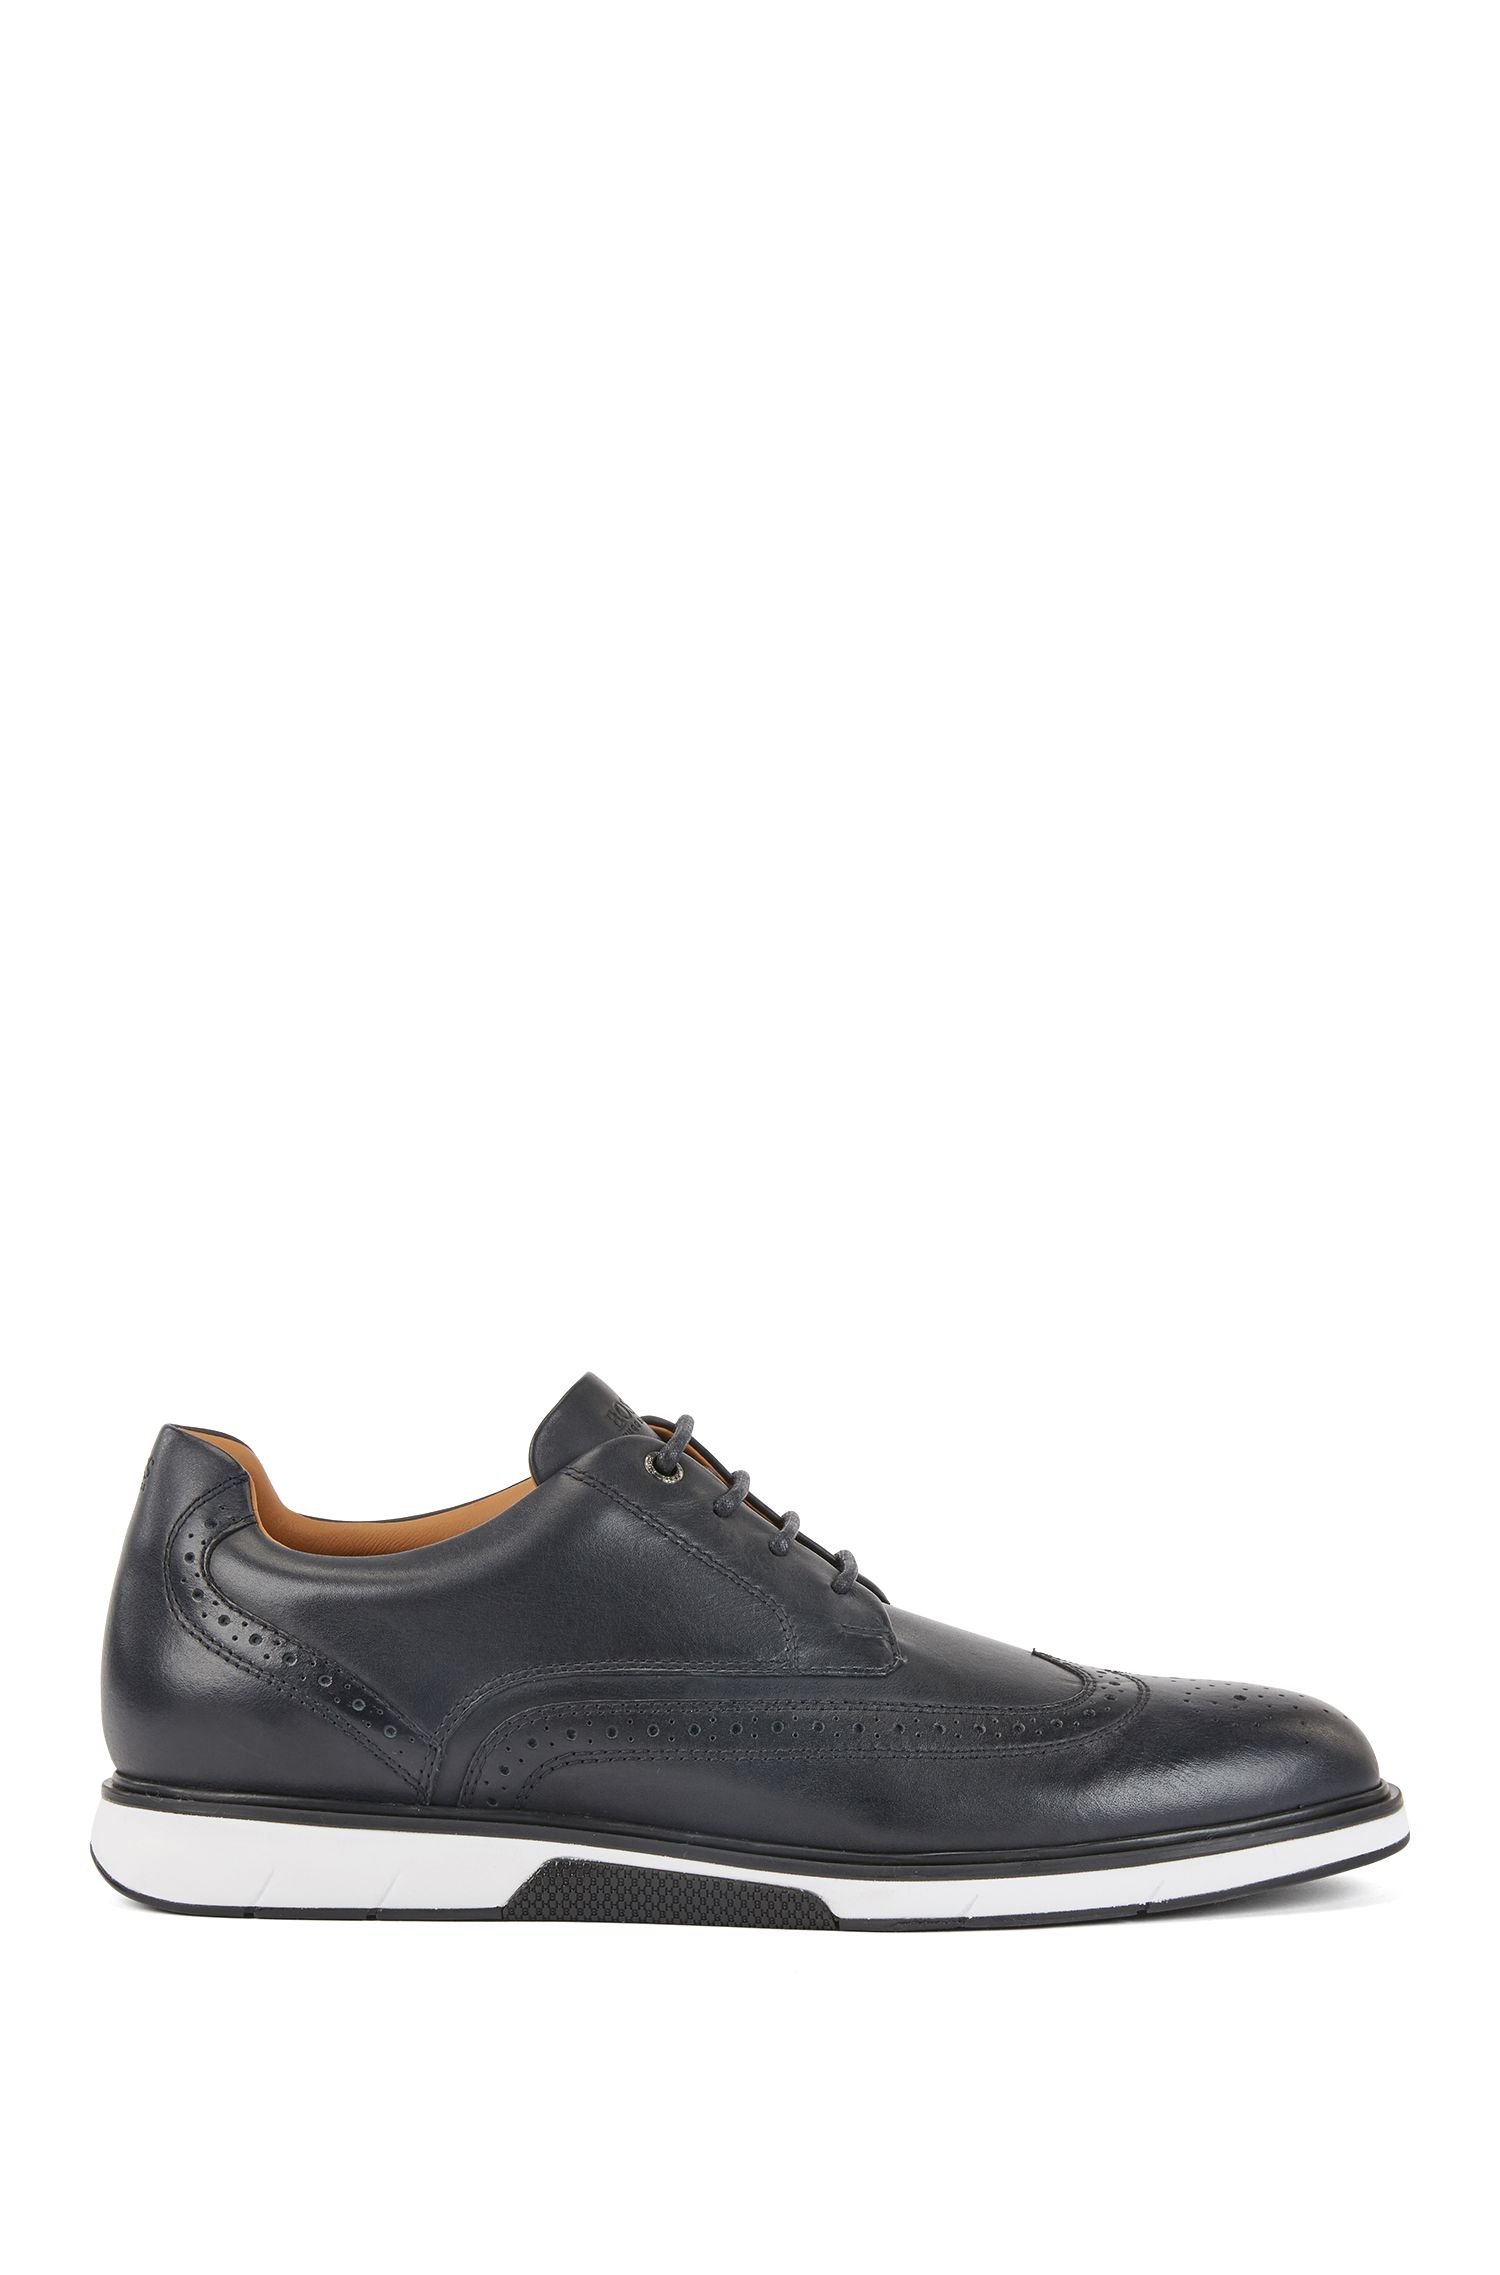 Leather Derby shoes with trainer-style sole, Dunkelblau